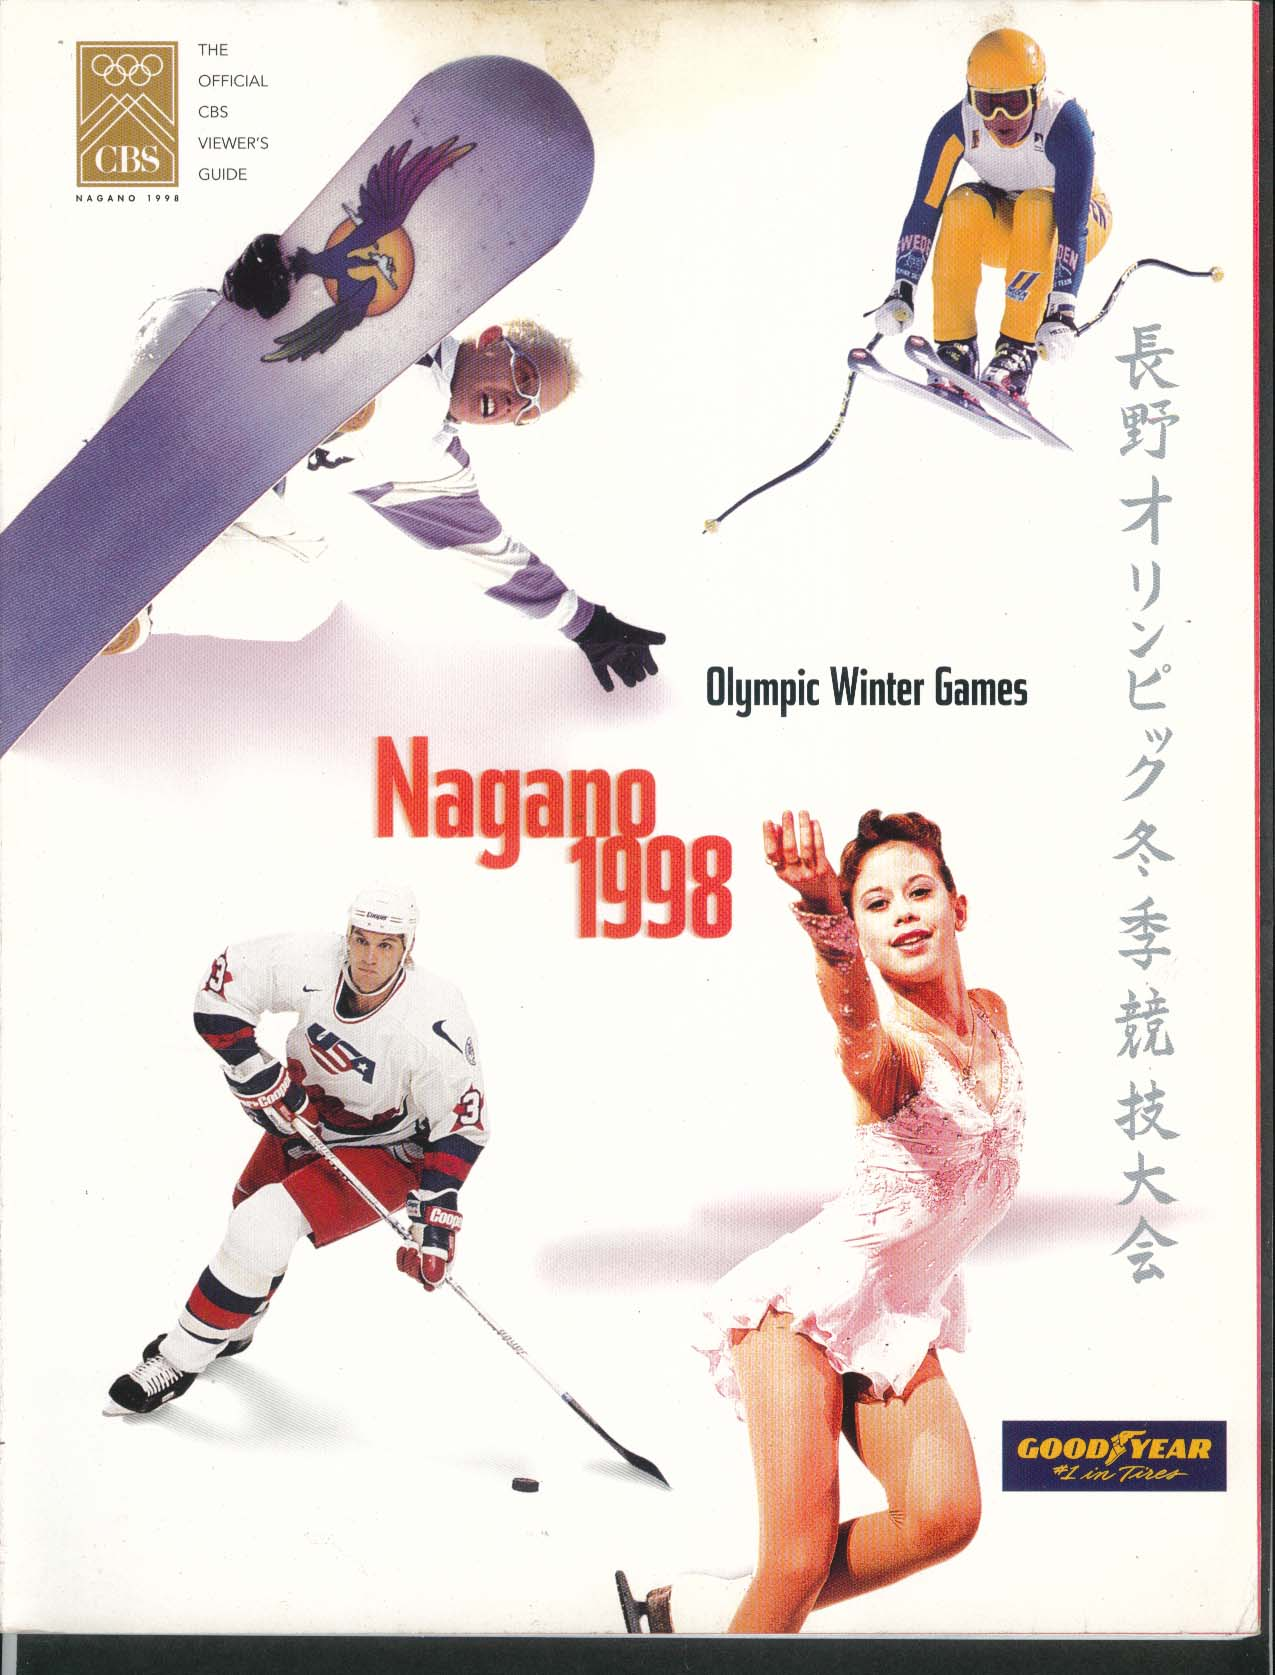 Nagano 1998 Olympic Winter Games Official CBS Viewer's Guide